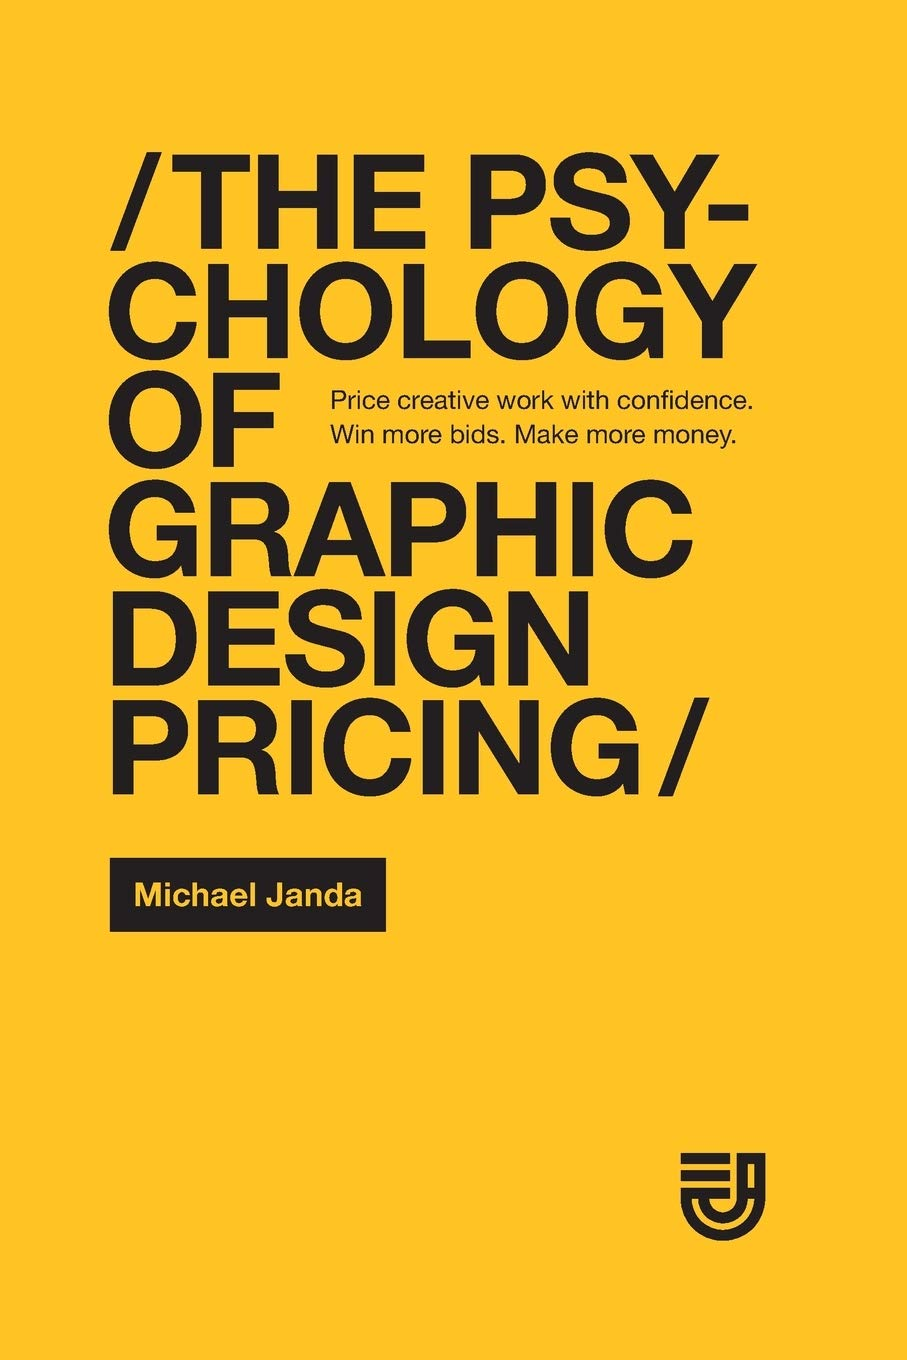 The Psychology of Graphic Design Pricing book cover